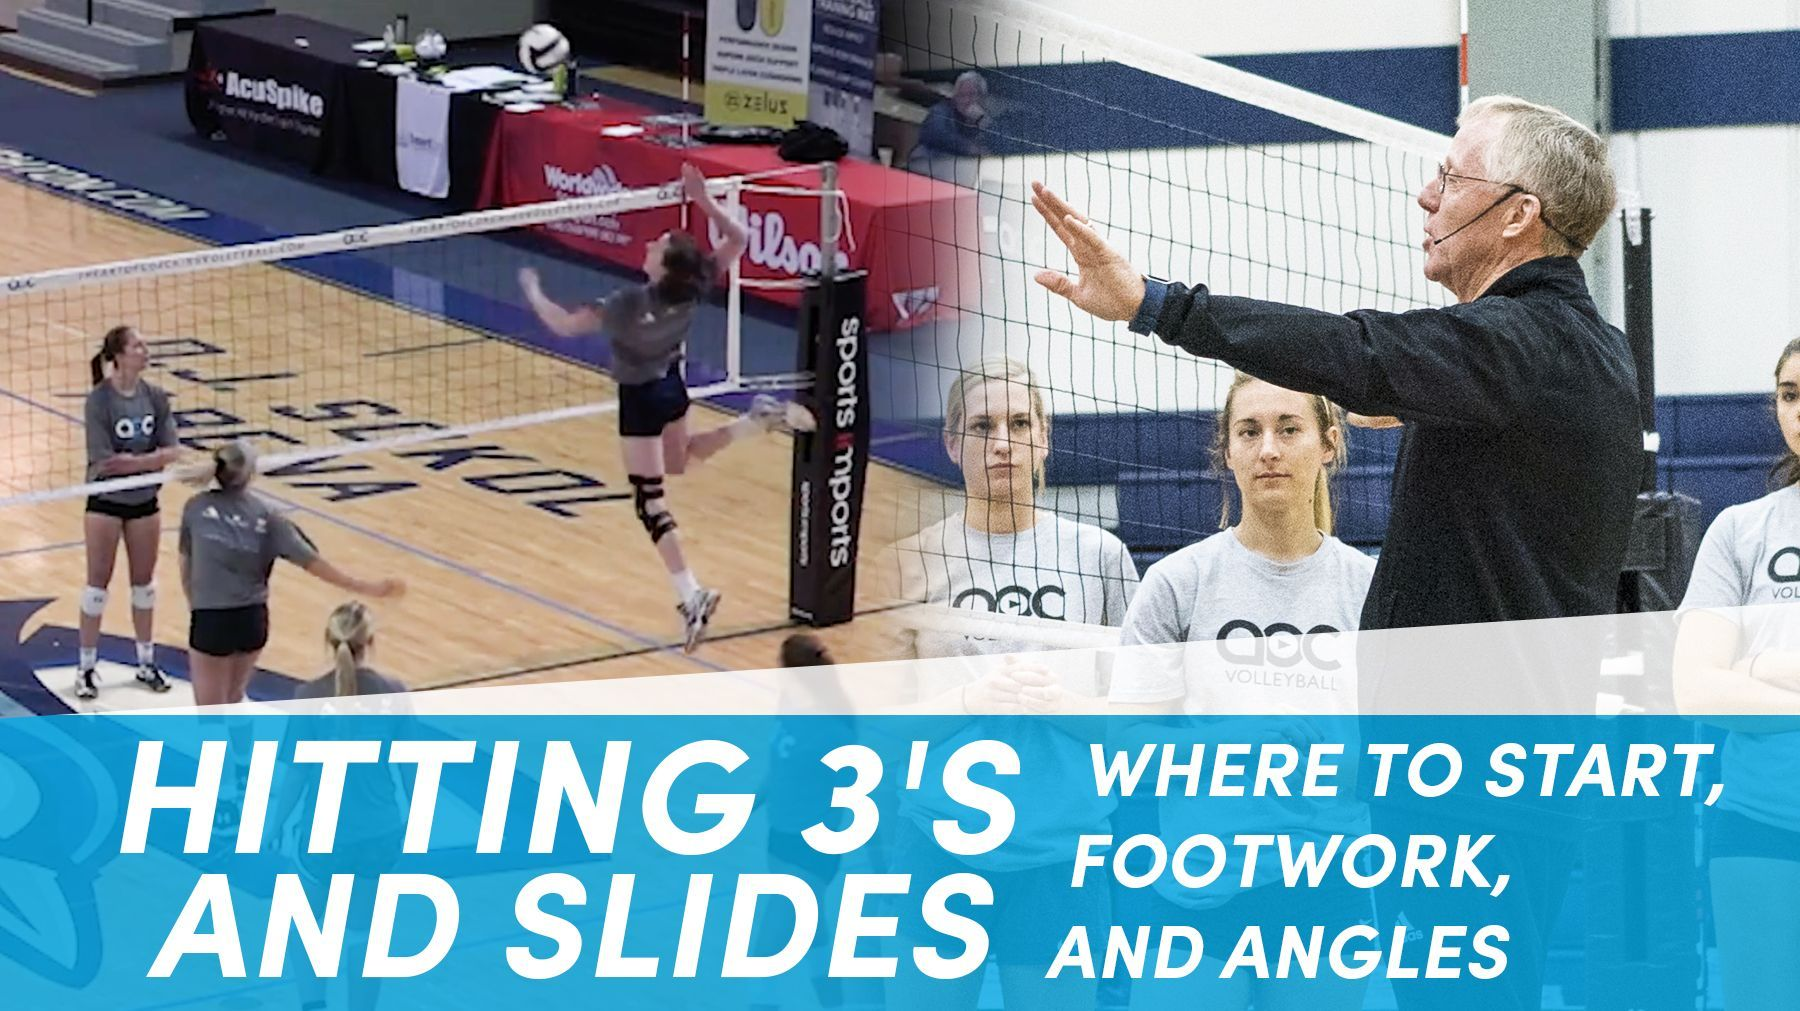 Hitting 3 S And Slides Where To Start Footwork And Angles Volleyball Skills Coaching Volleyball Volleyball Training